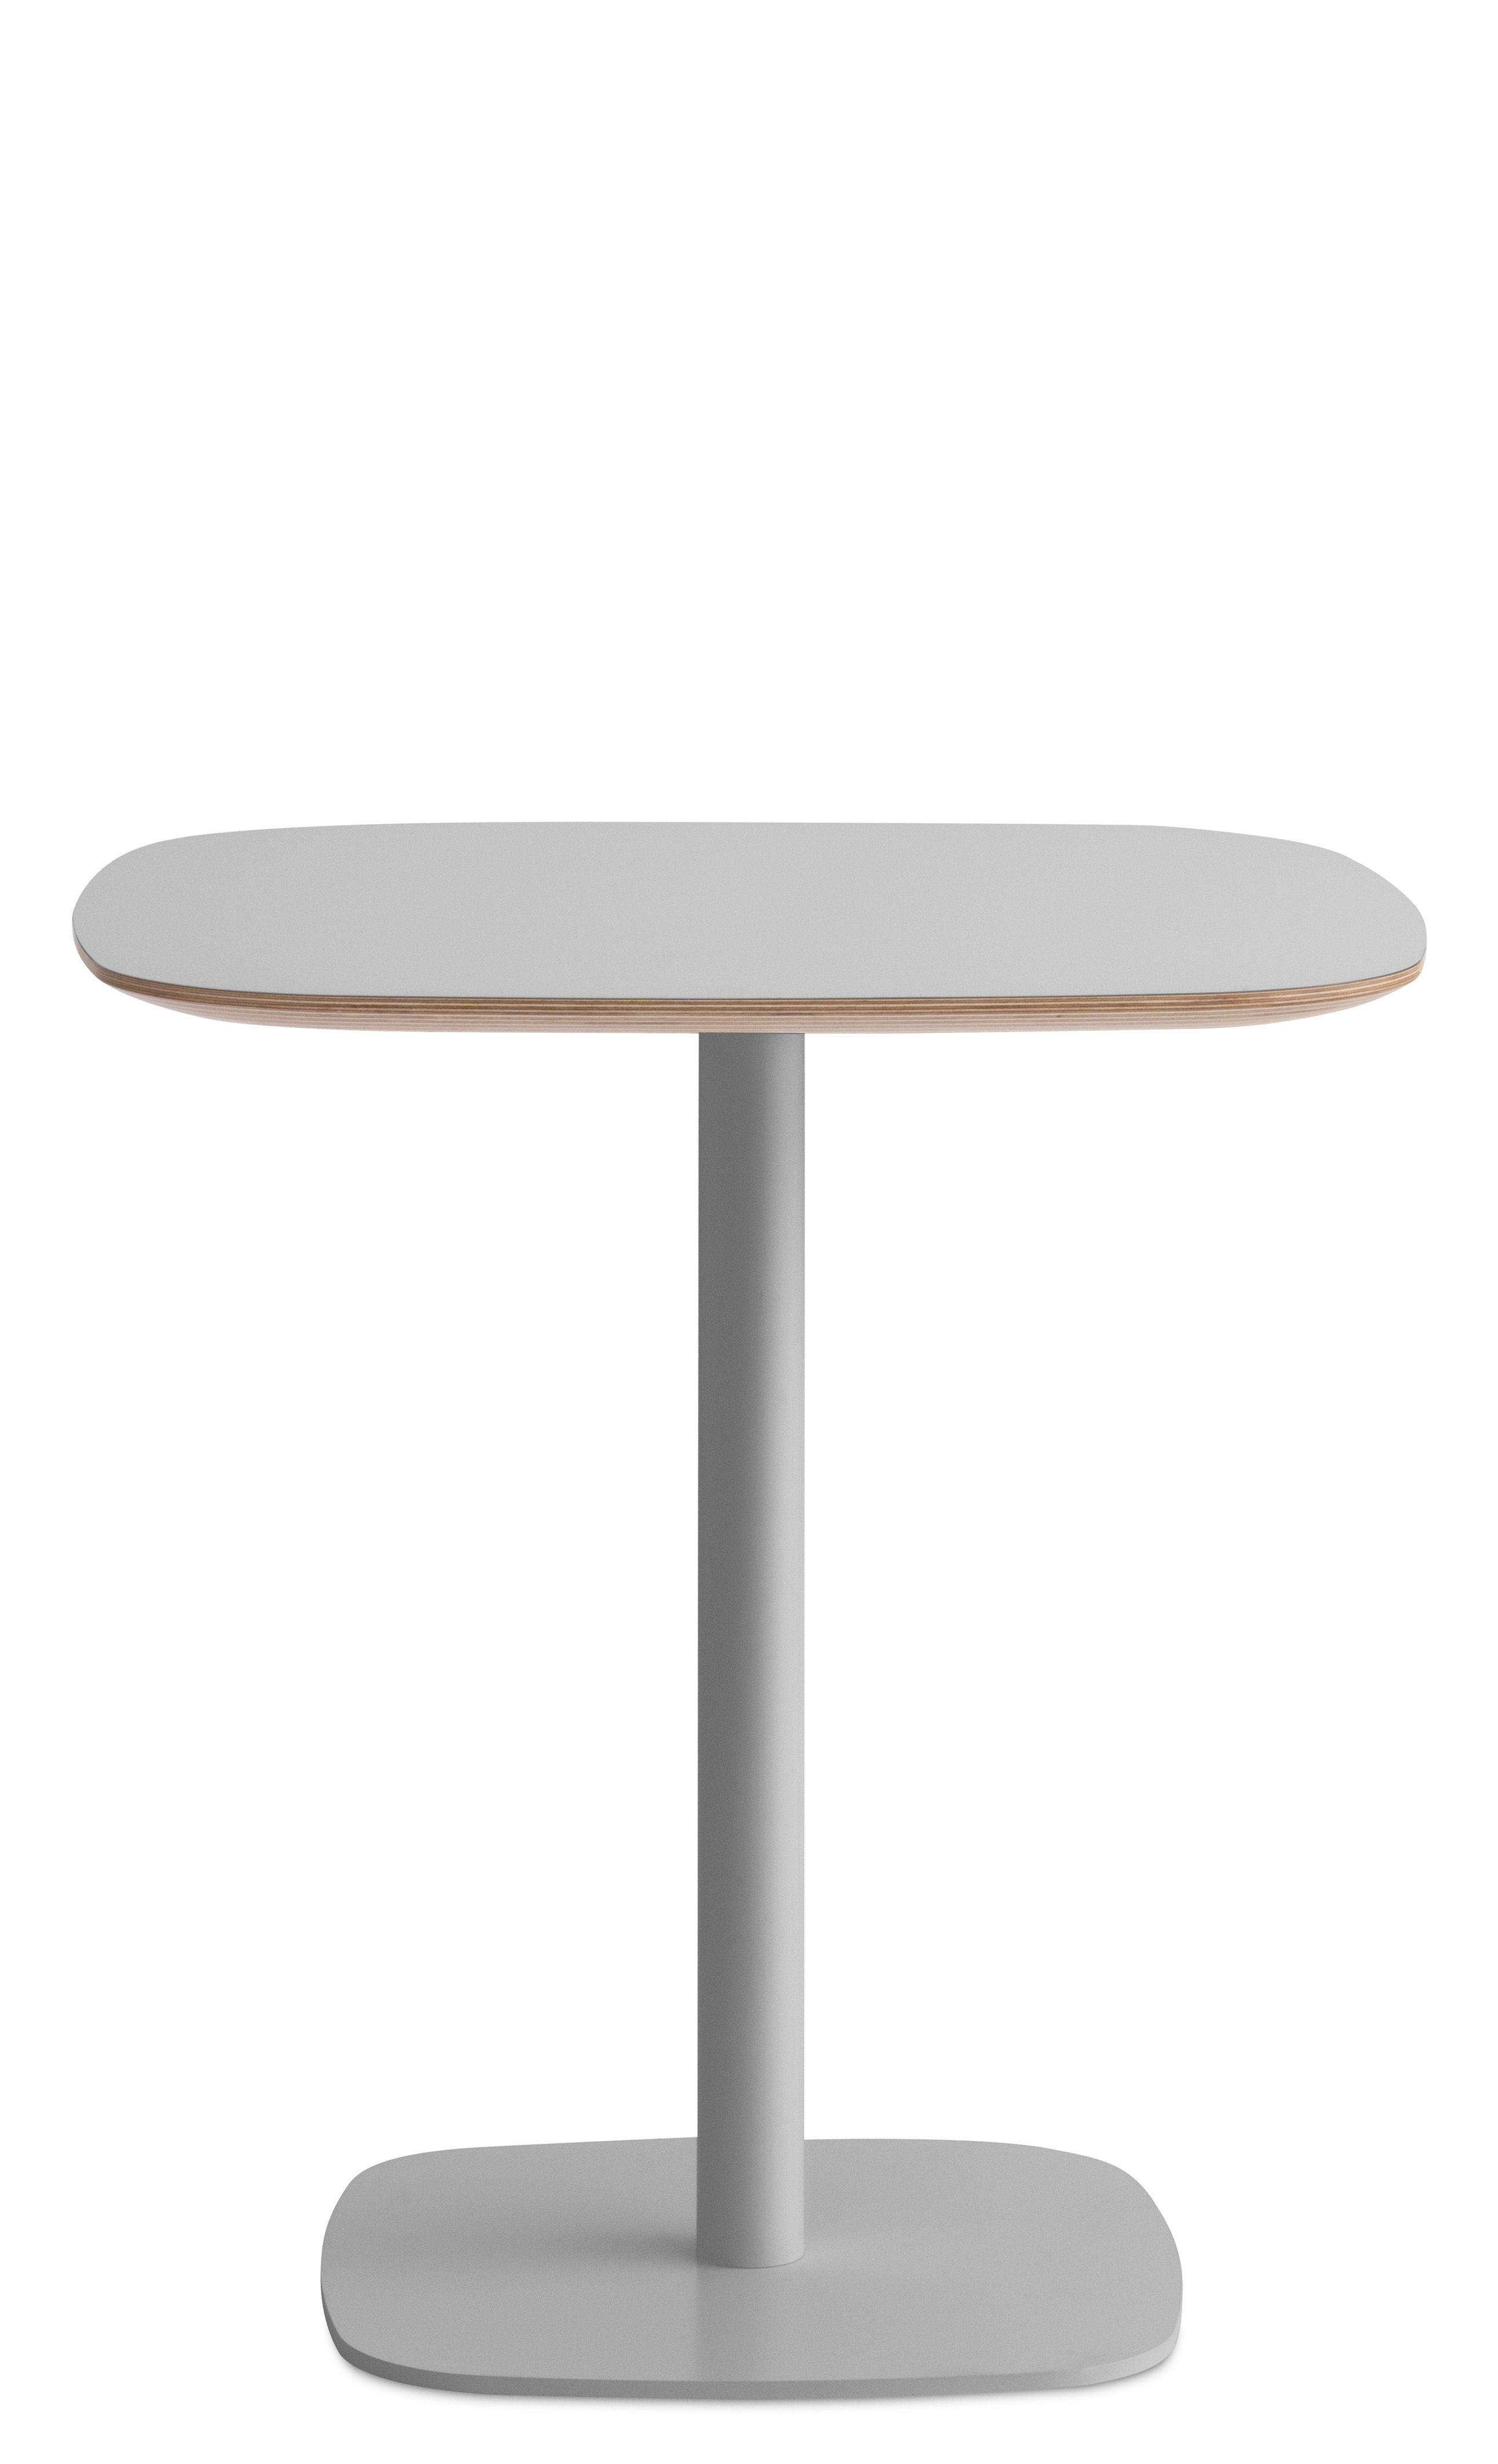 Furniture - Dining Tables - Form Square table - 70 x 70 cm by Normann Copenhagen - Grey - Lacquered oak, Lacquered steel, Linoleum coated oak